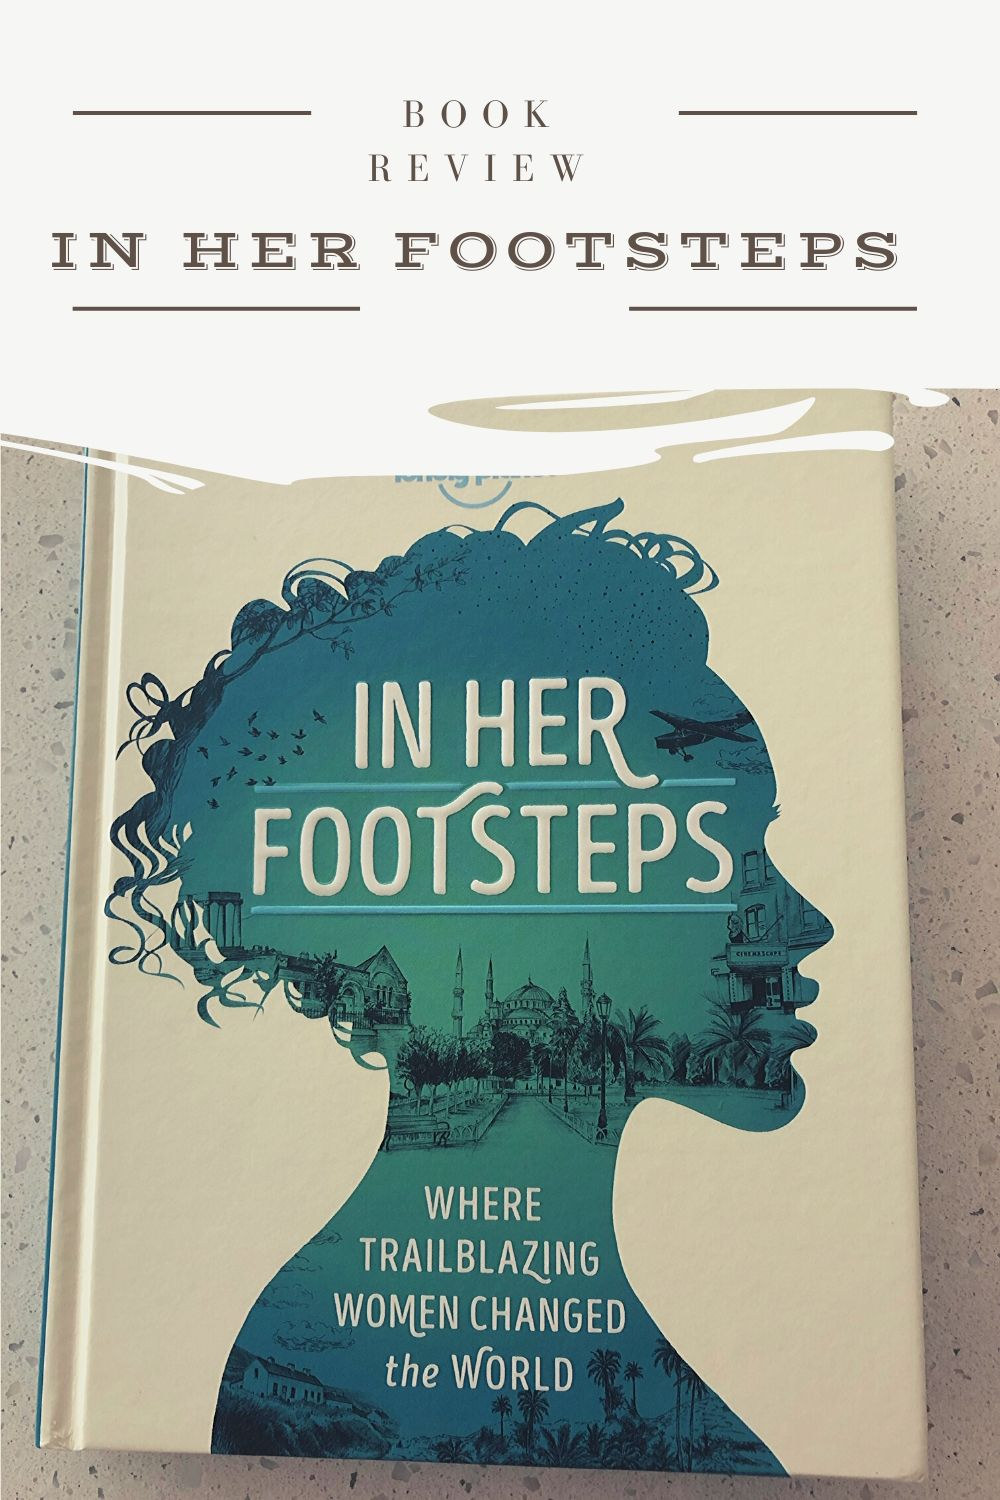 Book Review: In Her Footsteps